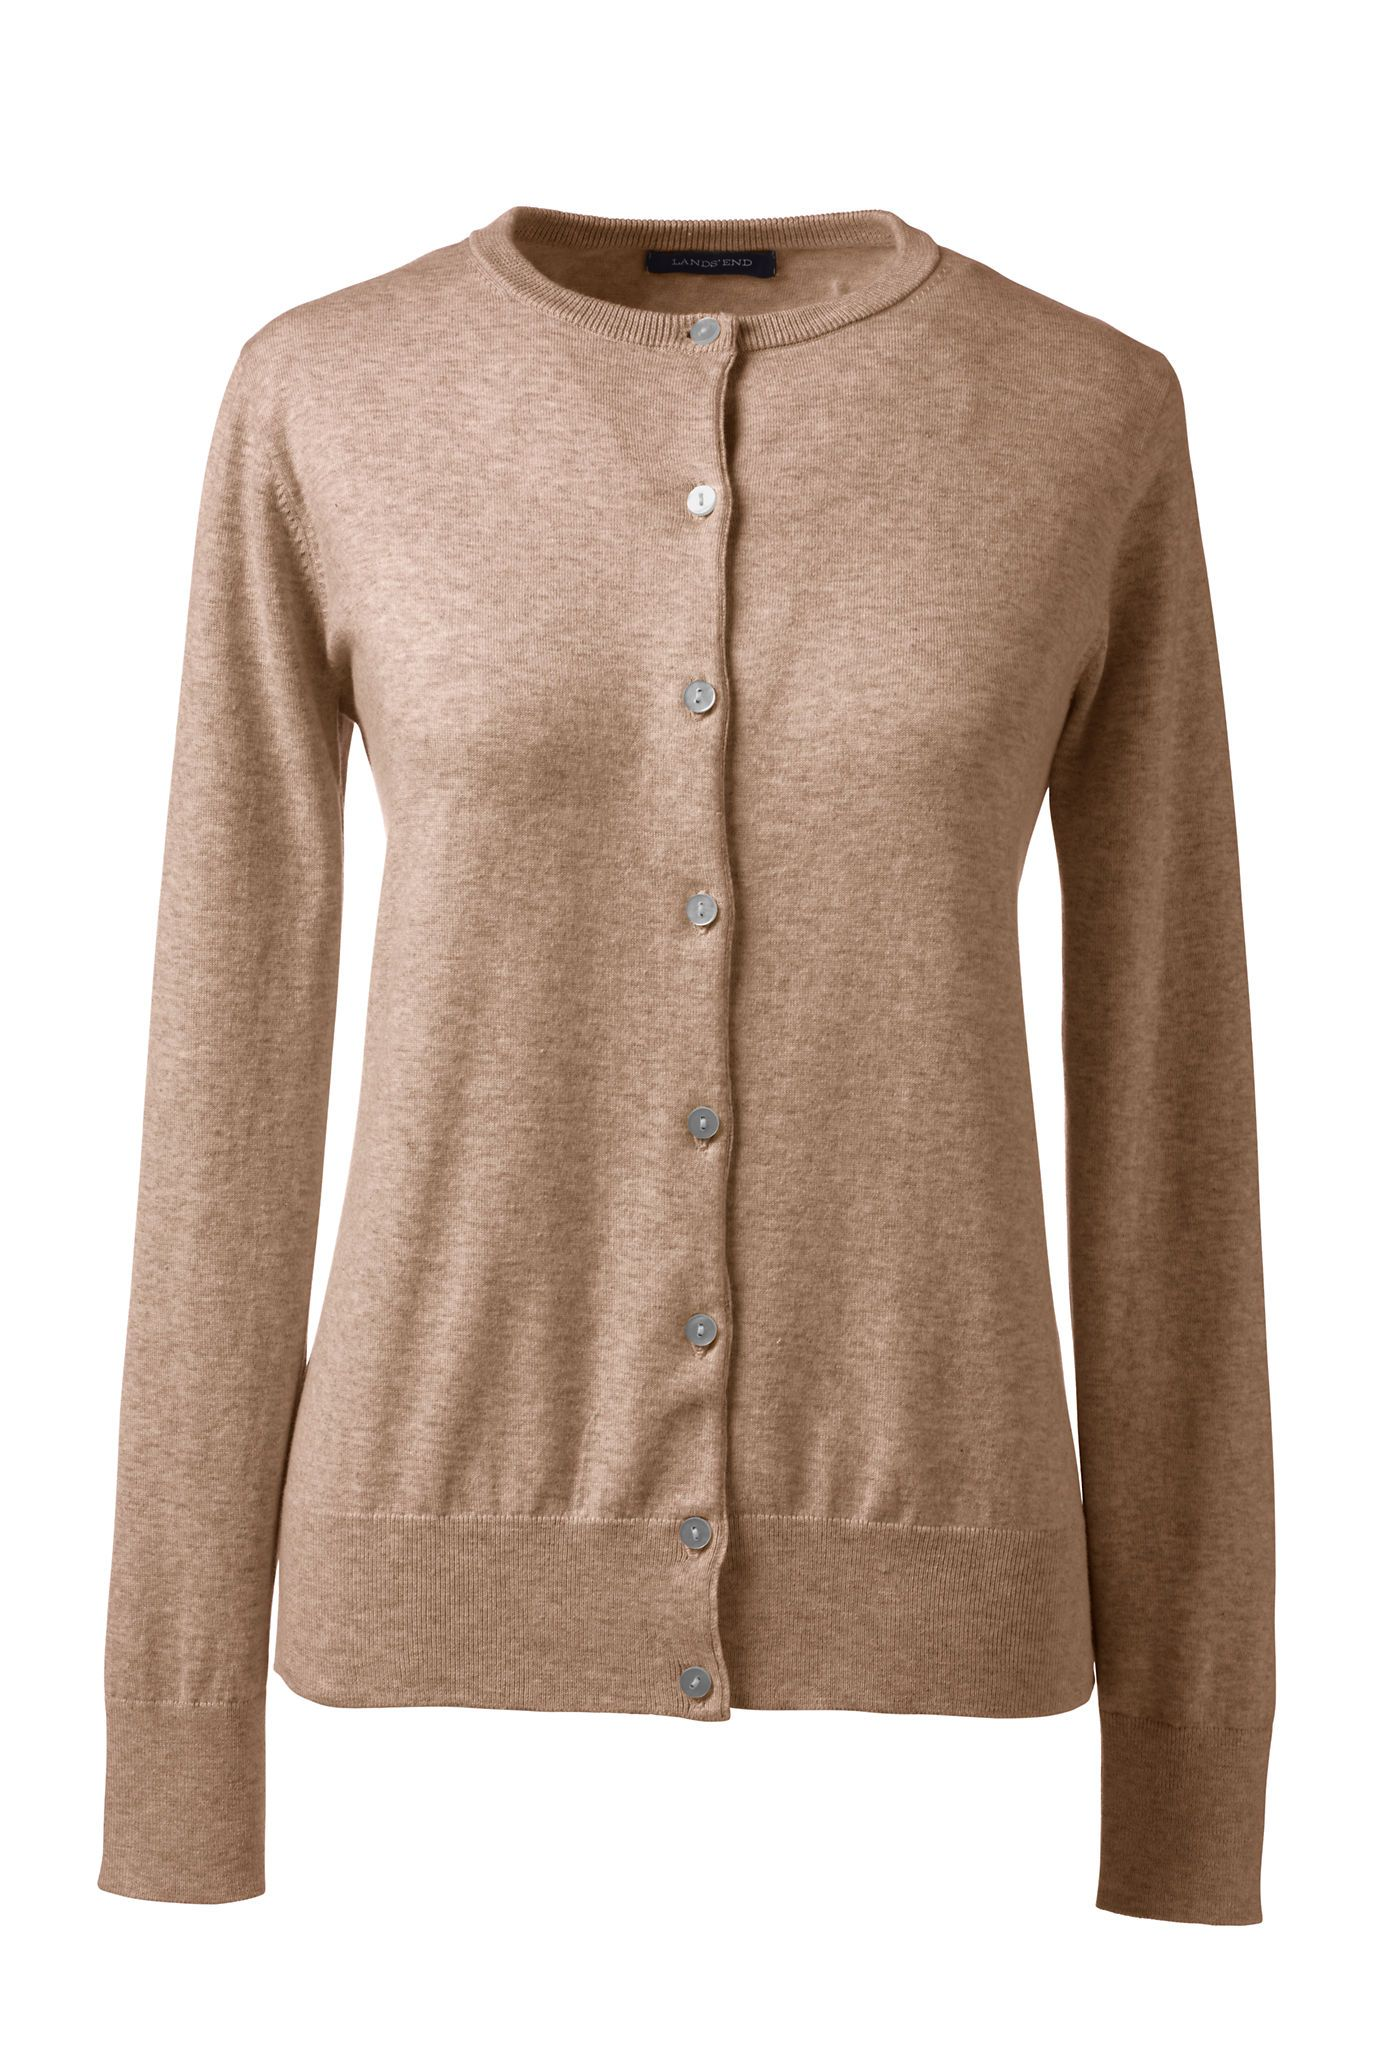 Classic Supima Cotton Cardigan in Vicuna Heather, $49.00 | style ...